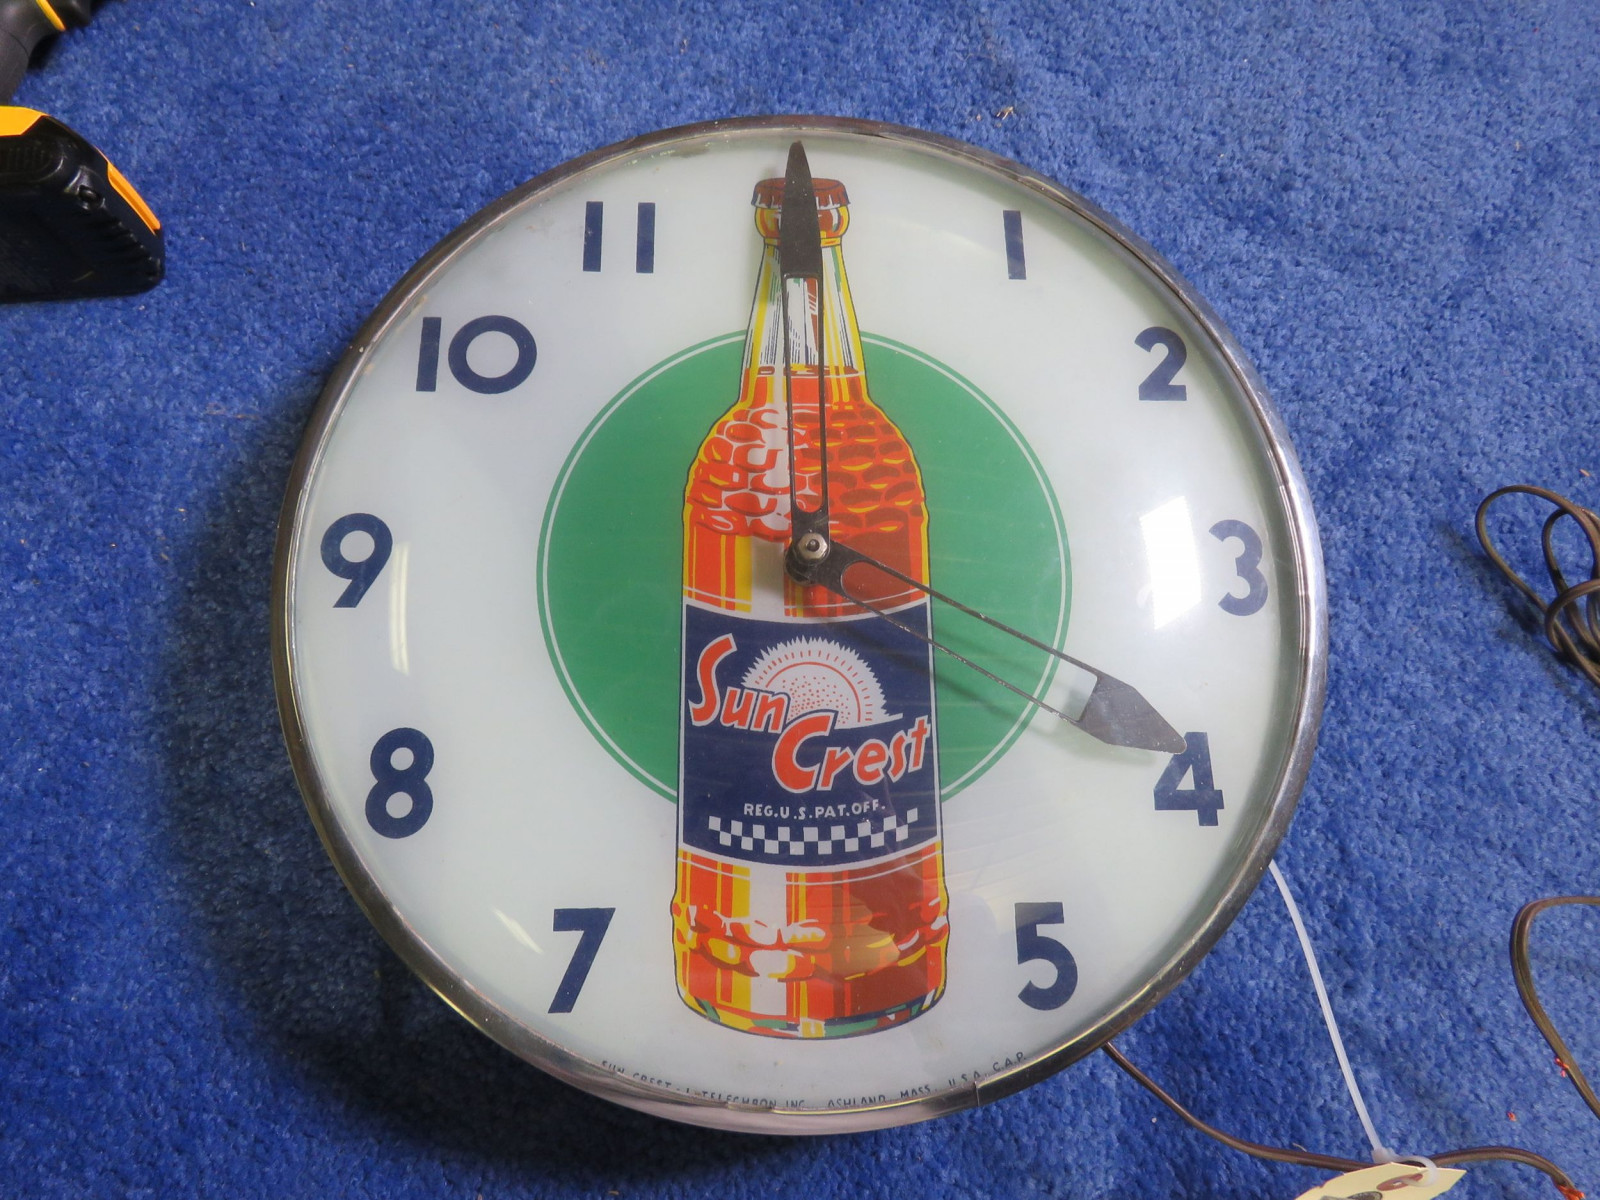 Vintage Suncrest Clock - Image 1